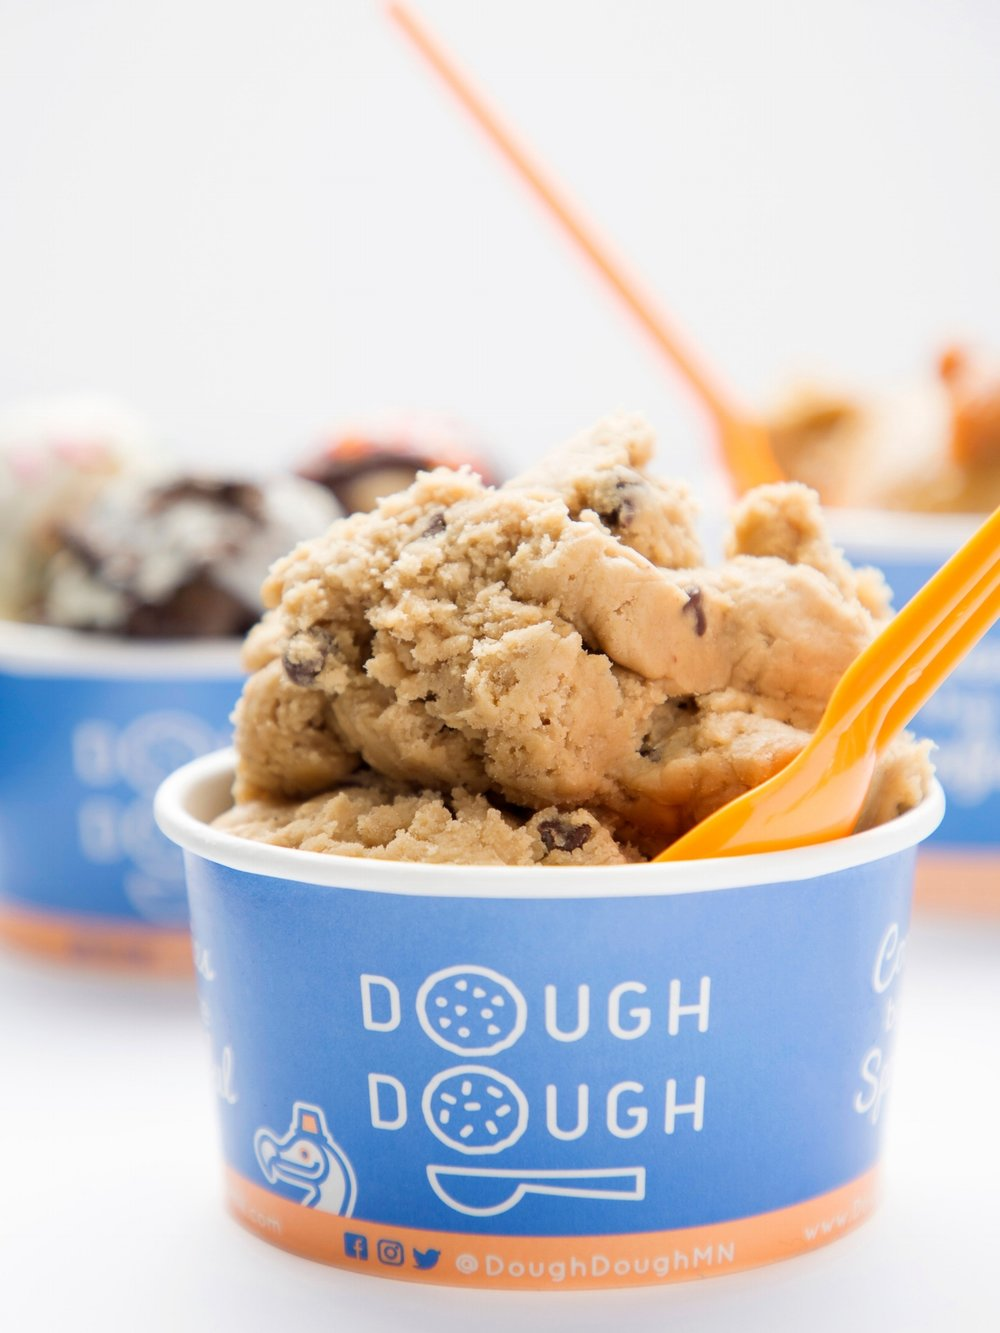 Dough Dough  - -store front @ the Mall of America-dessert food truck-mobile tricycle service-catering contactus@doughdoughmn.com(612) 547-8859